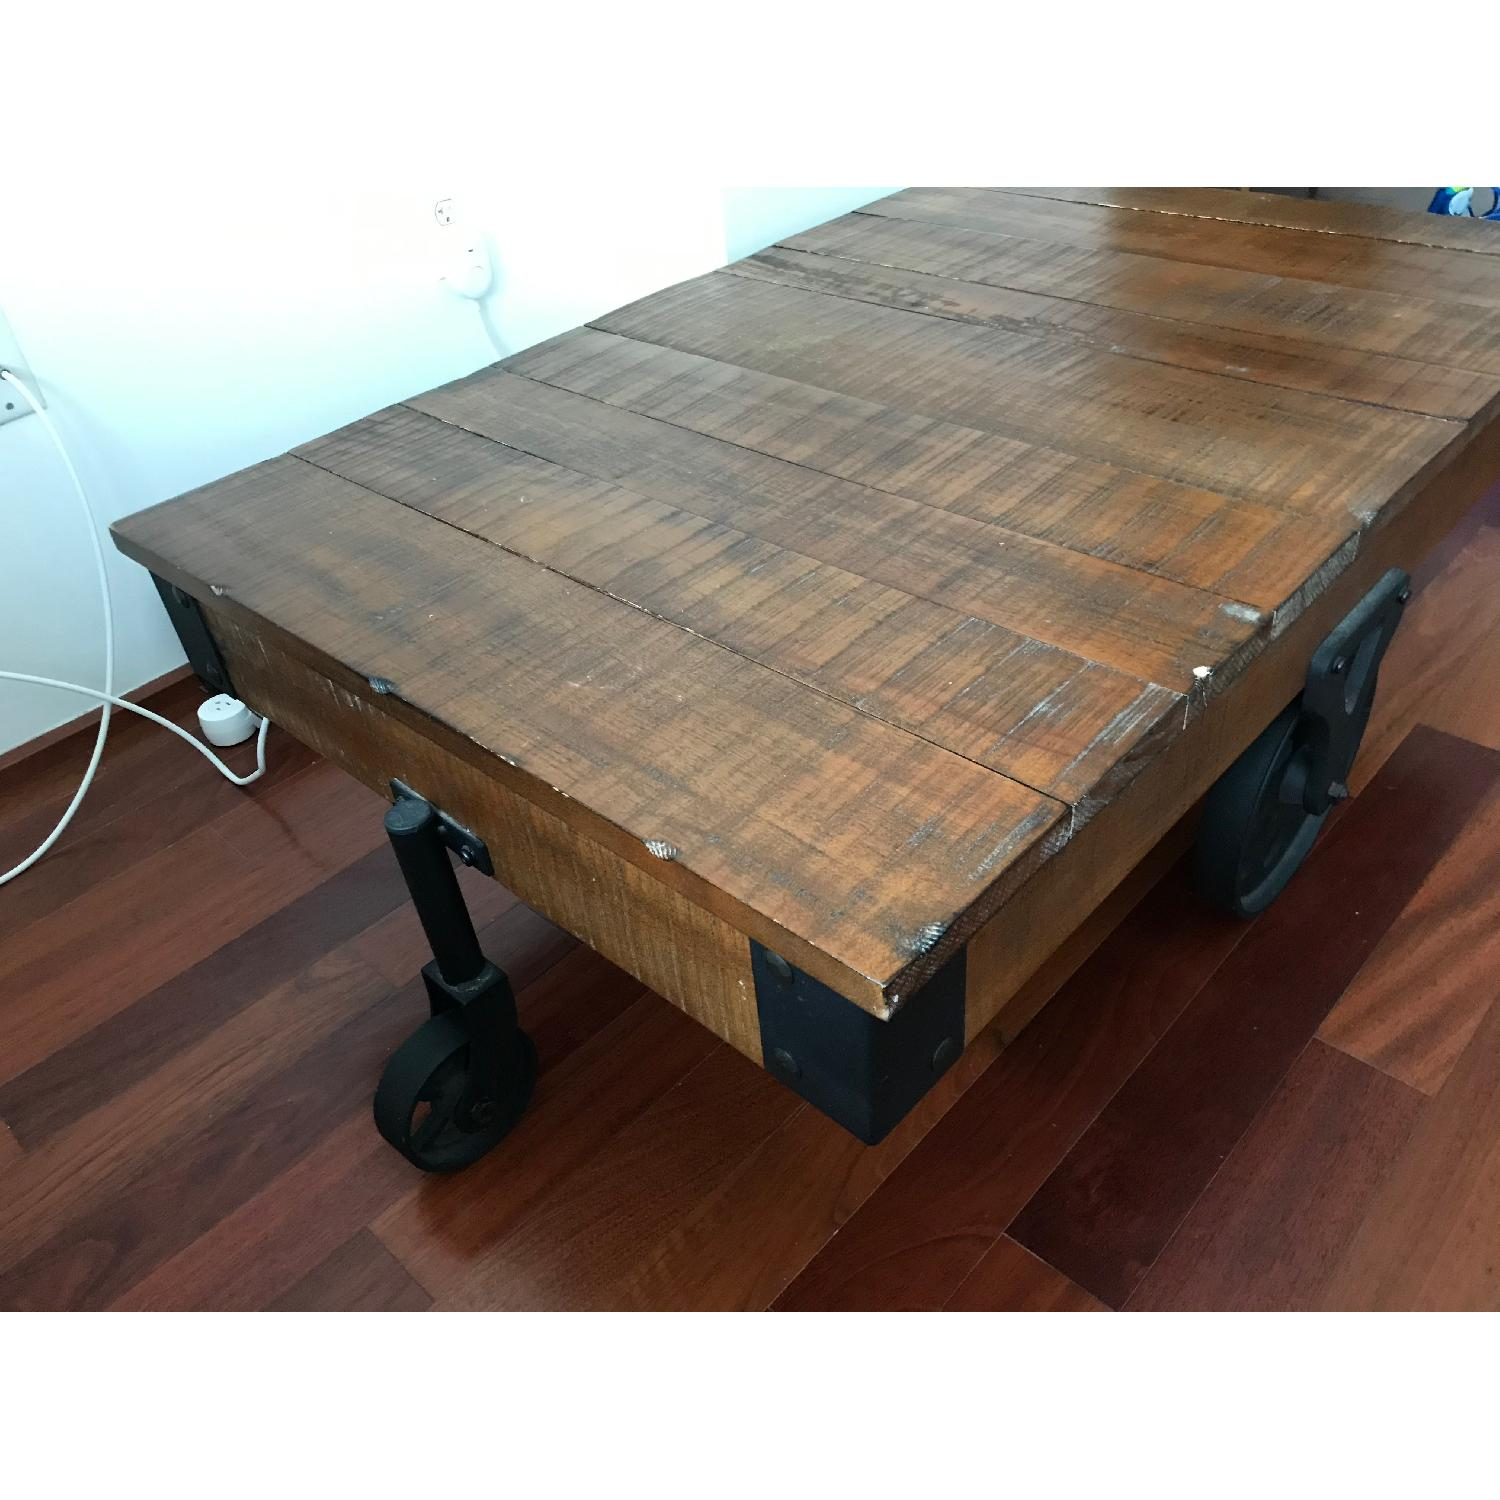 Coaster Distressed Country Wagon Coffee Table - image-4